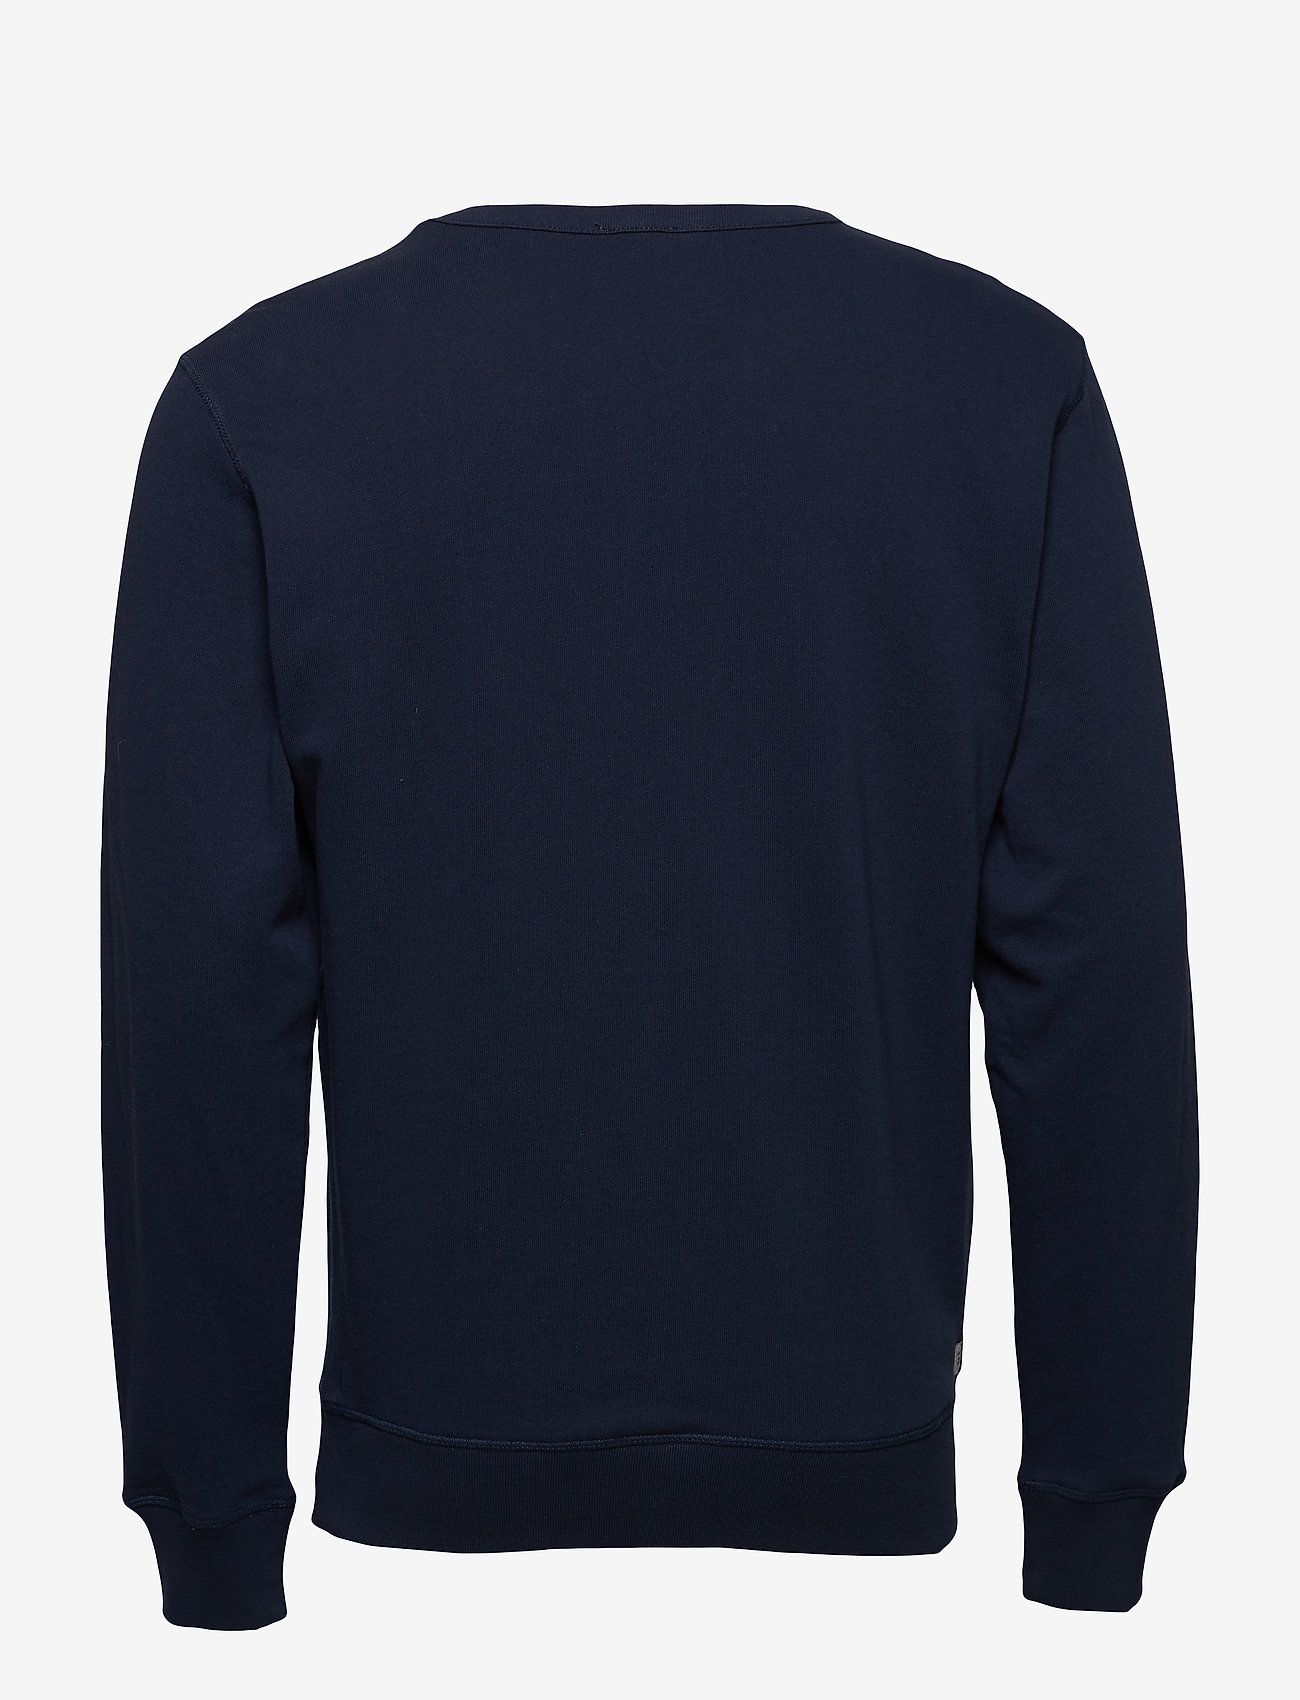 Diesel Men - UMLT-WILLY SWEAT-SHIRT - tops - dark/blue - 1